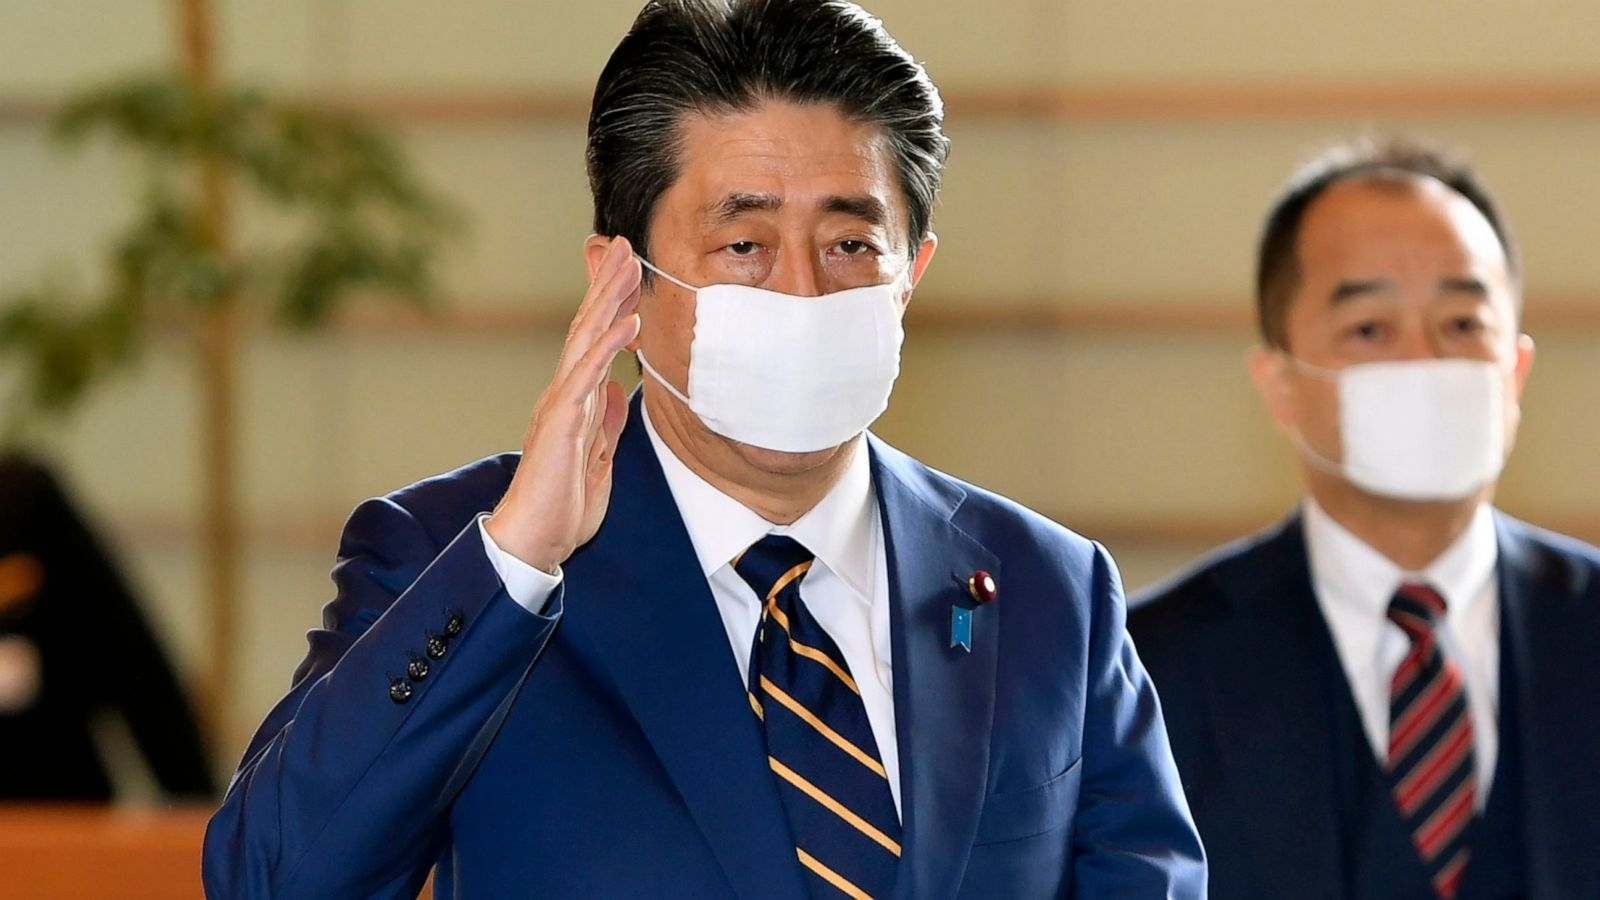 coronavirus live updates worlds infections surpasses 2 millions japan declares nationwide state of emergency